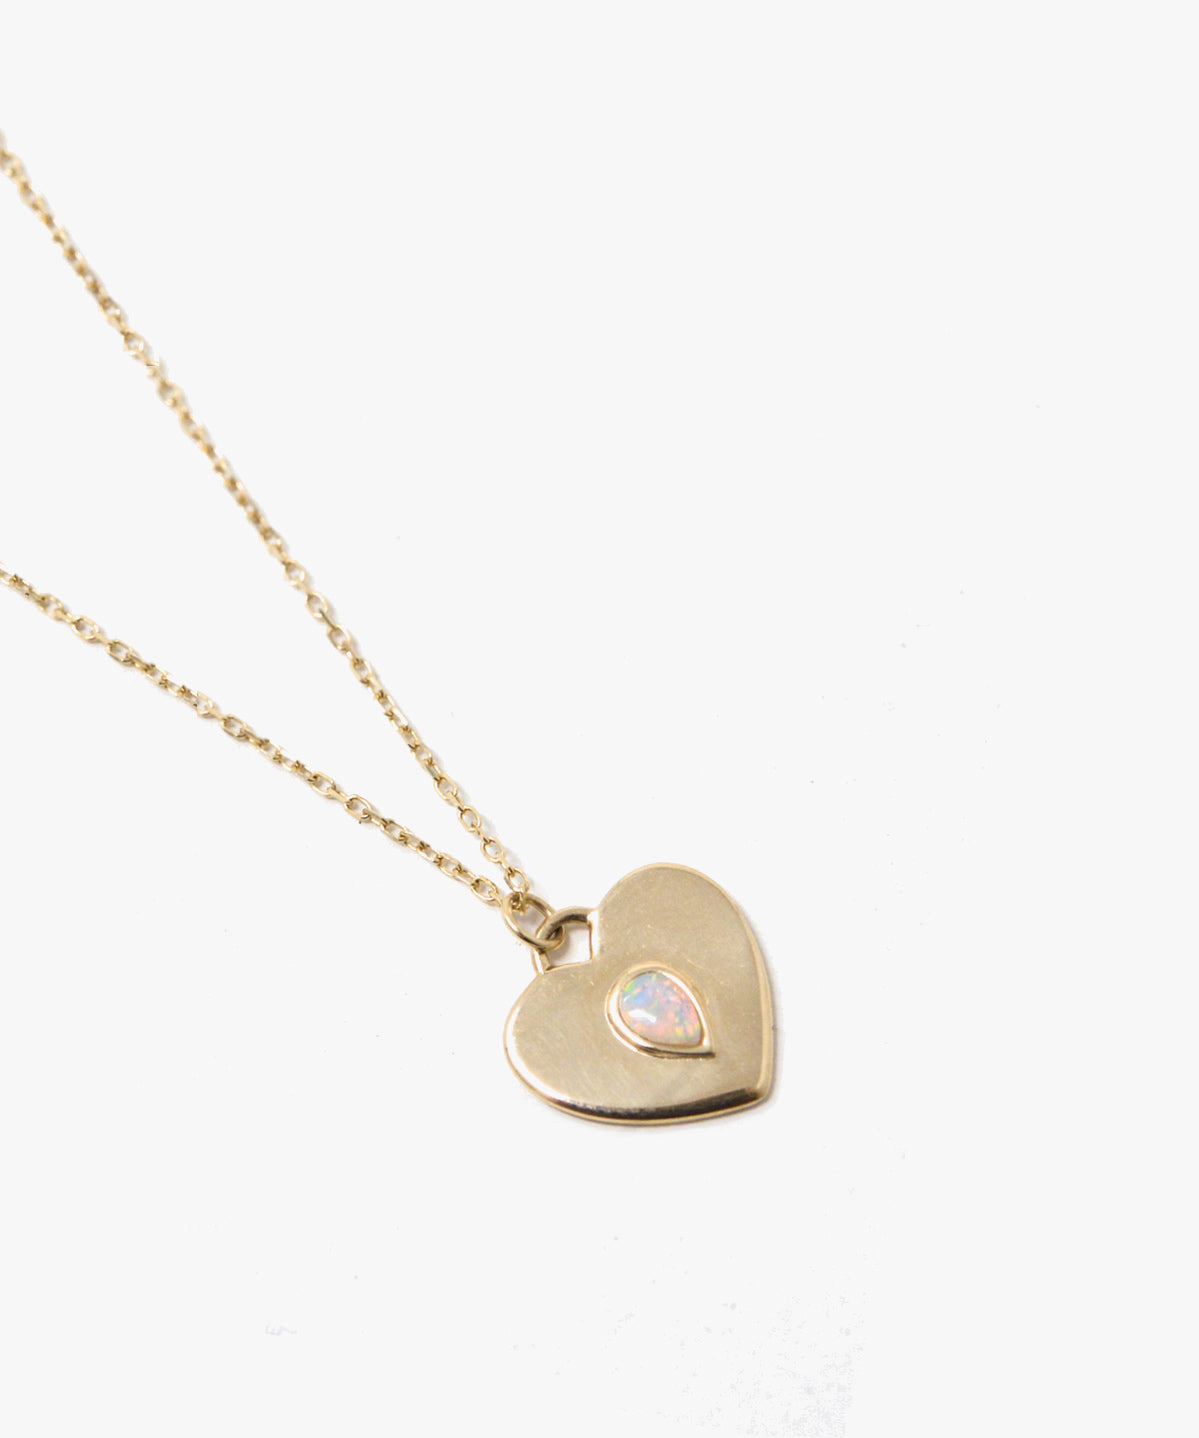 HAZEL OPAL HEART NECKLACE